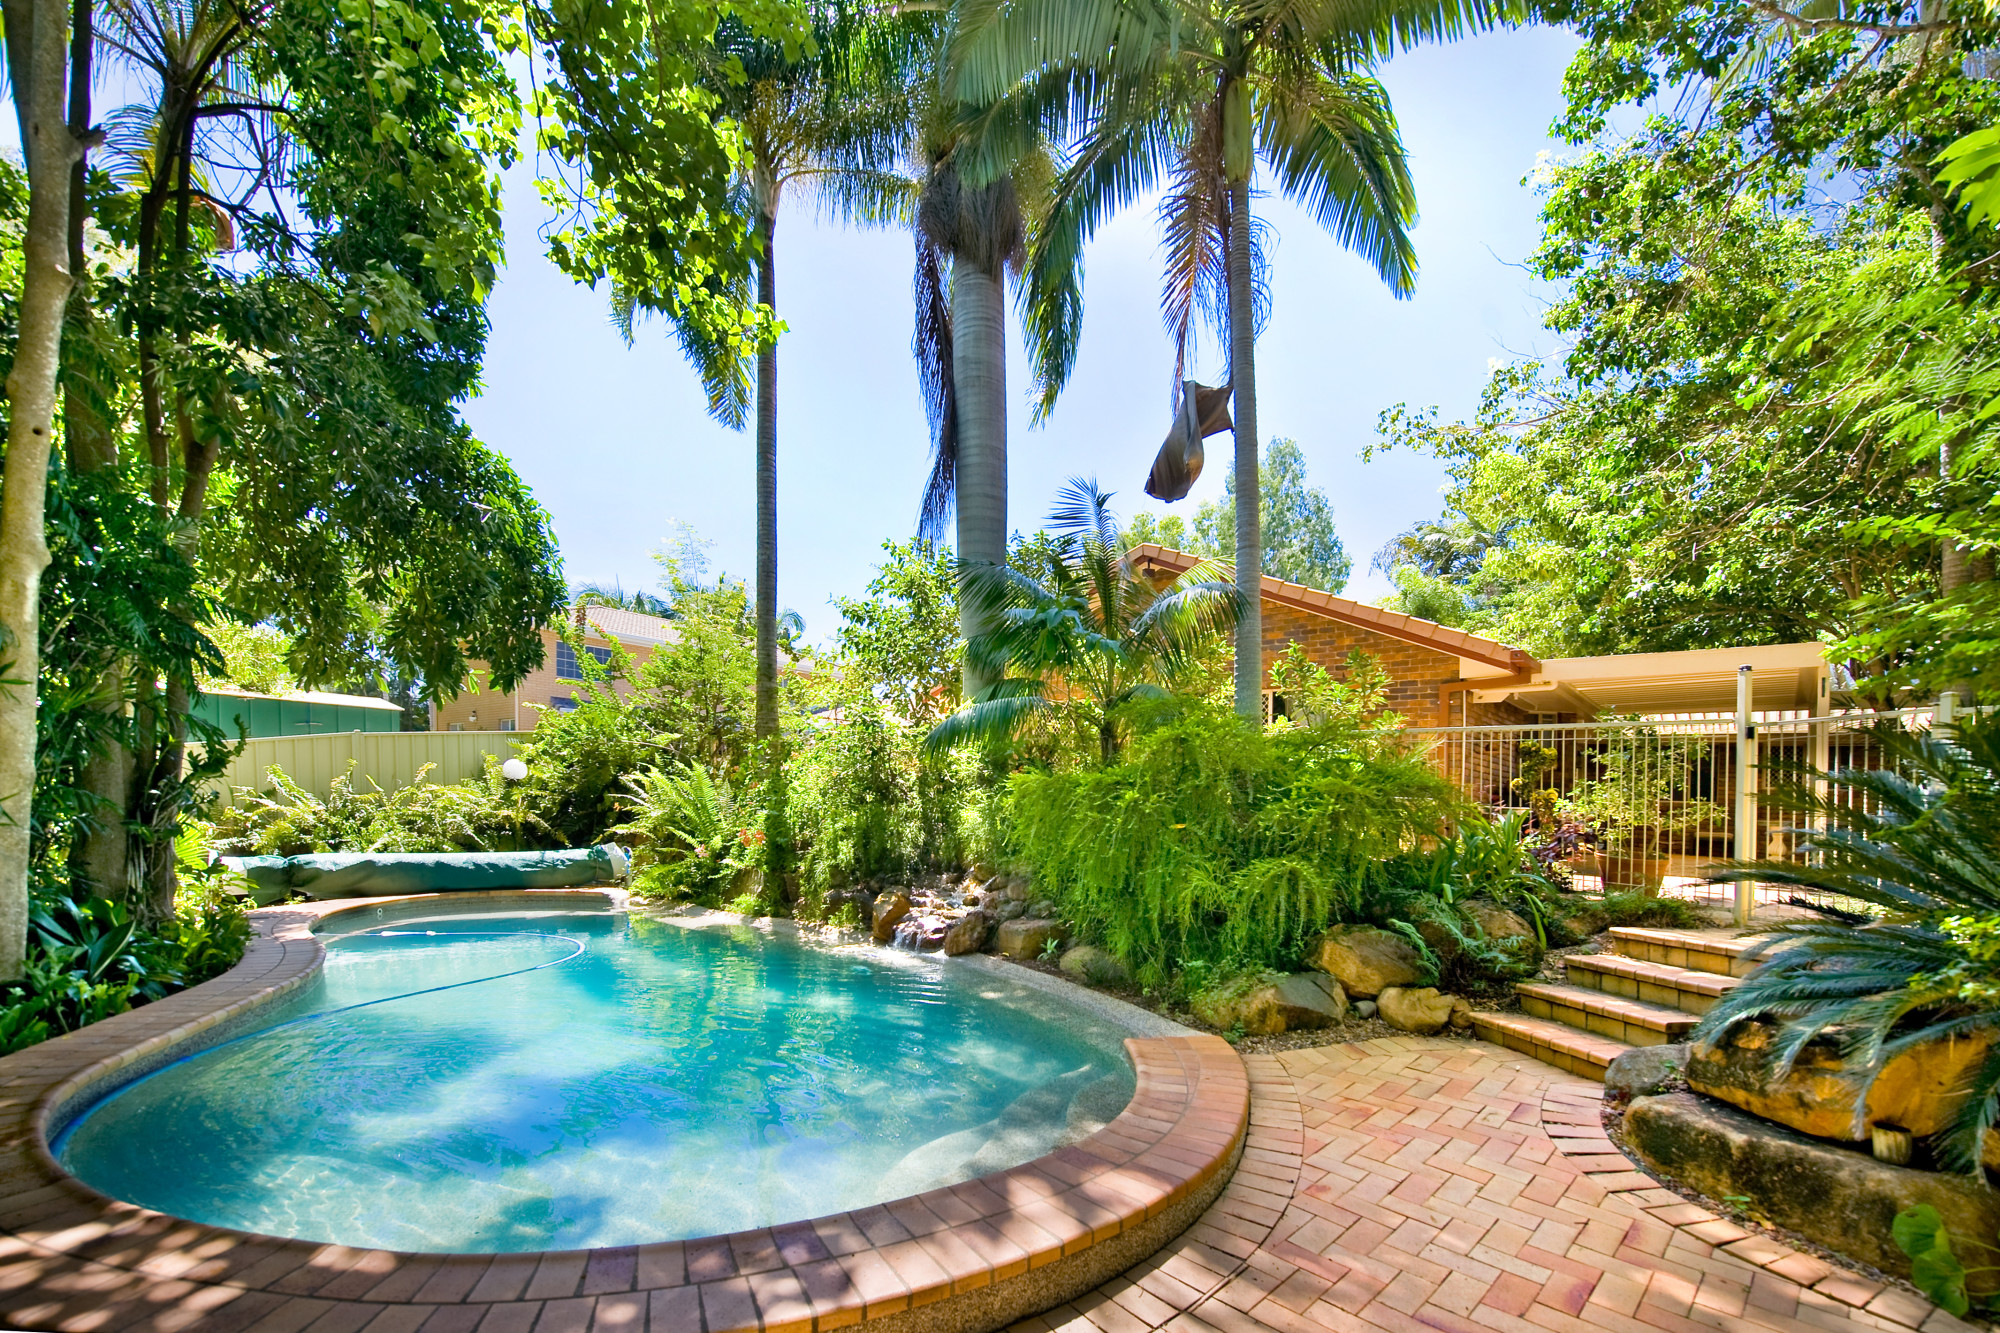 7 Ways Your Whole Family Can Benefit From a Backyard Spa